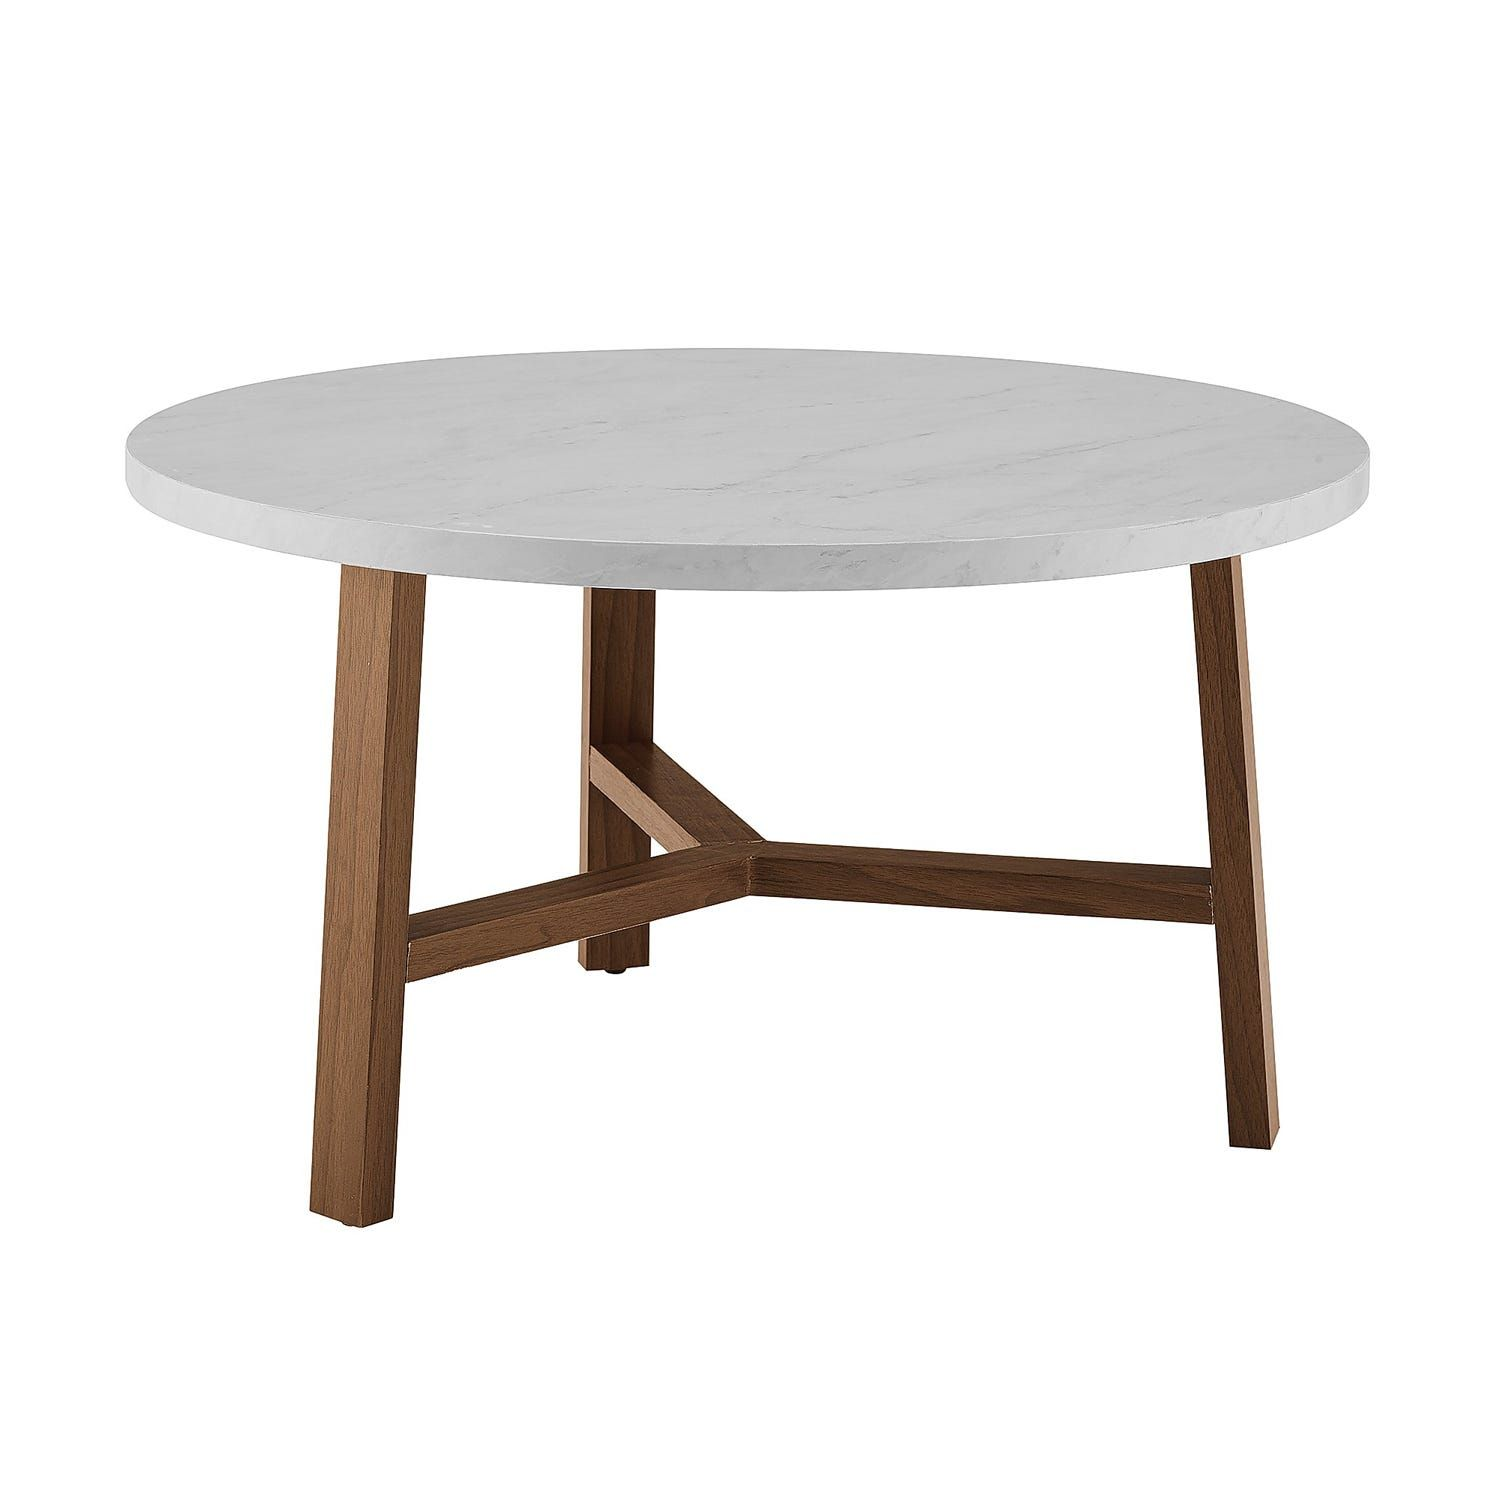 Modern White Faux Marble Light Oak Round Coffee Table In 2020